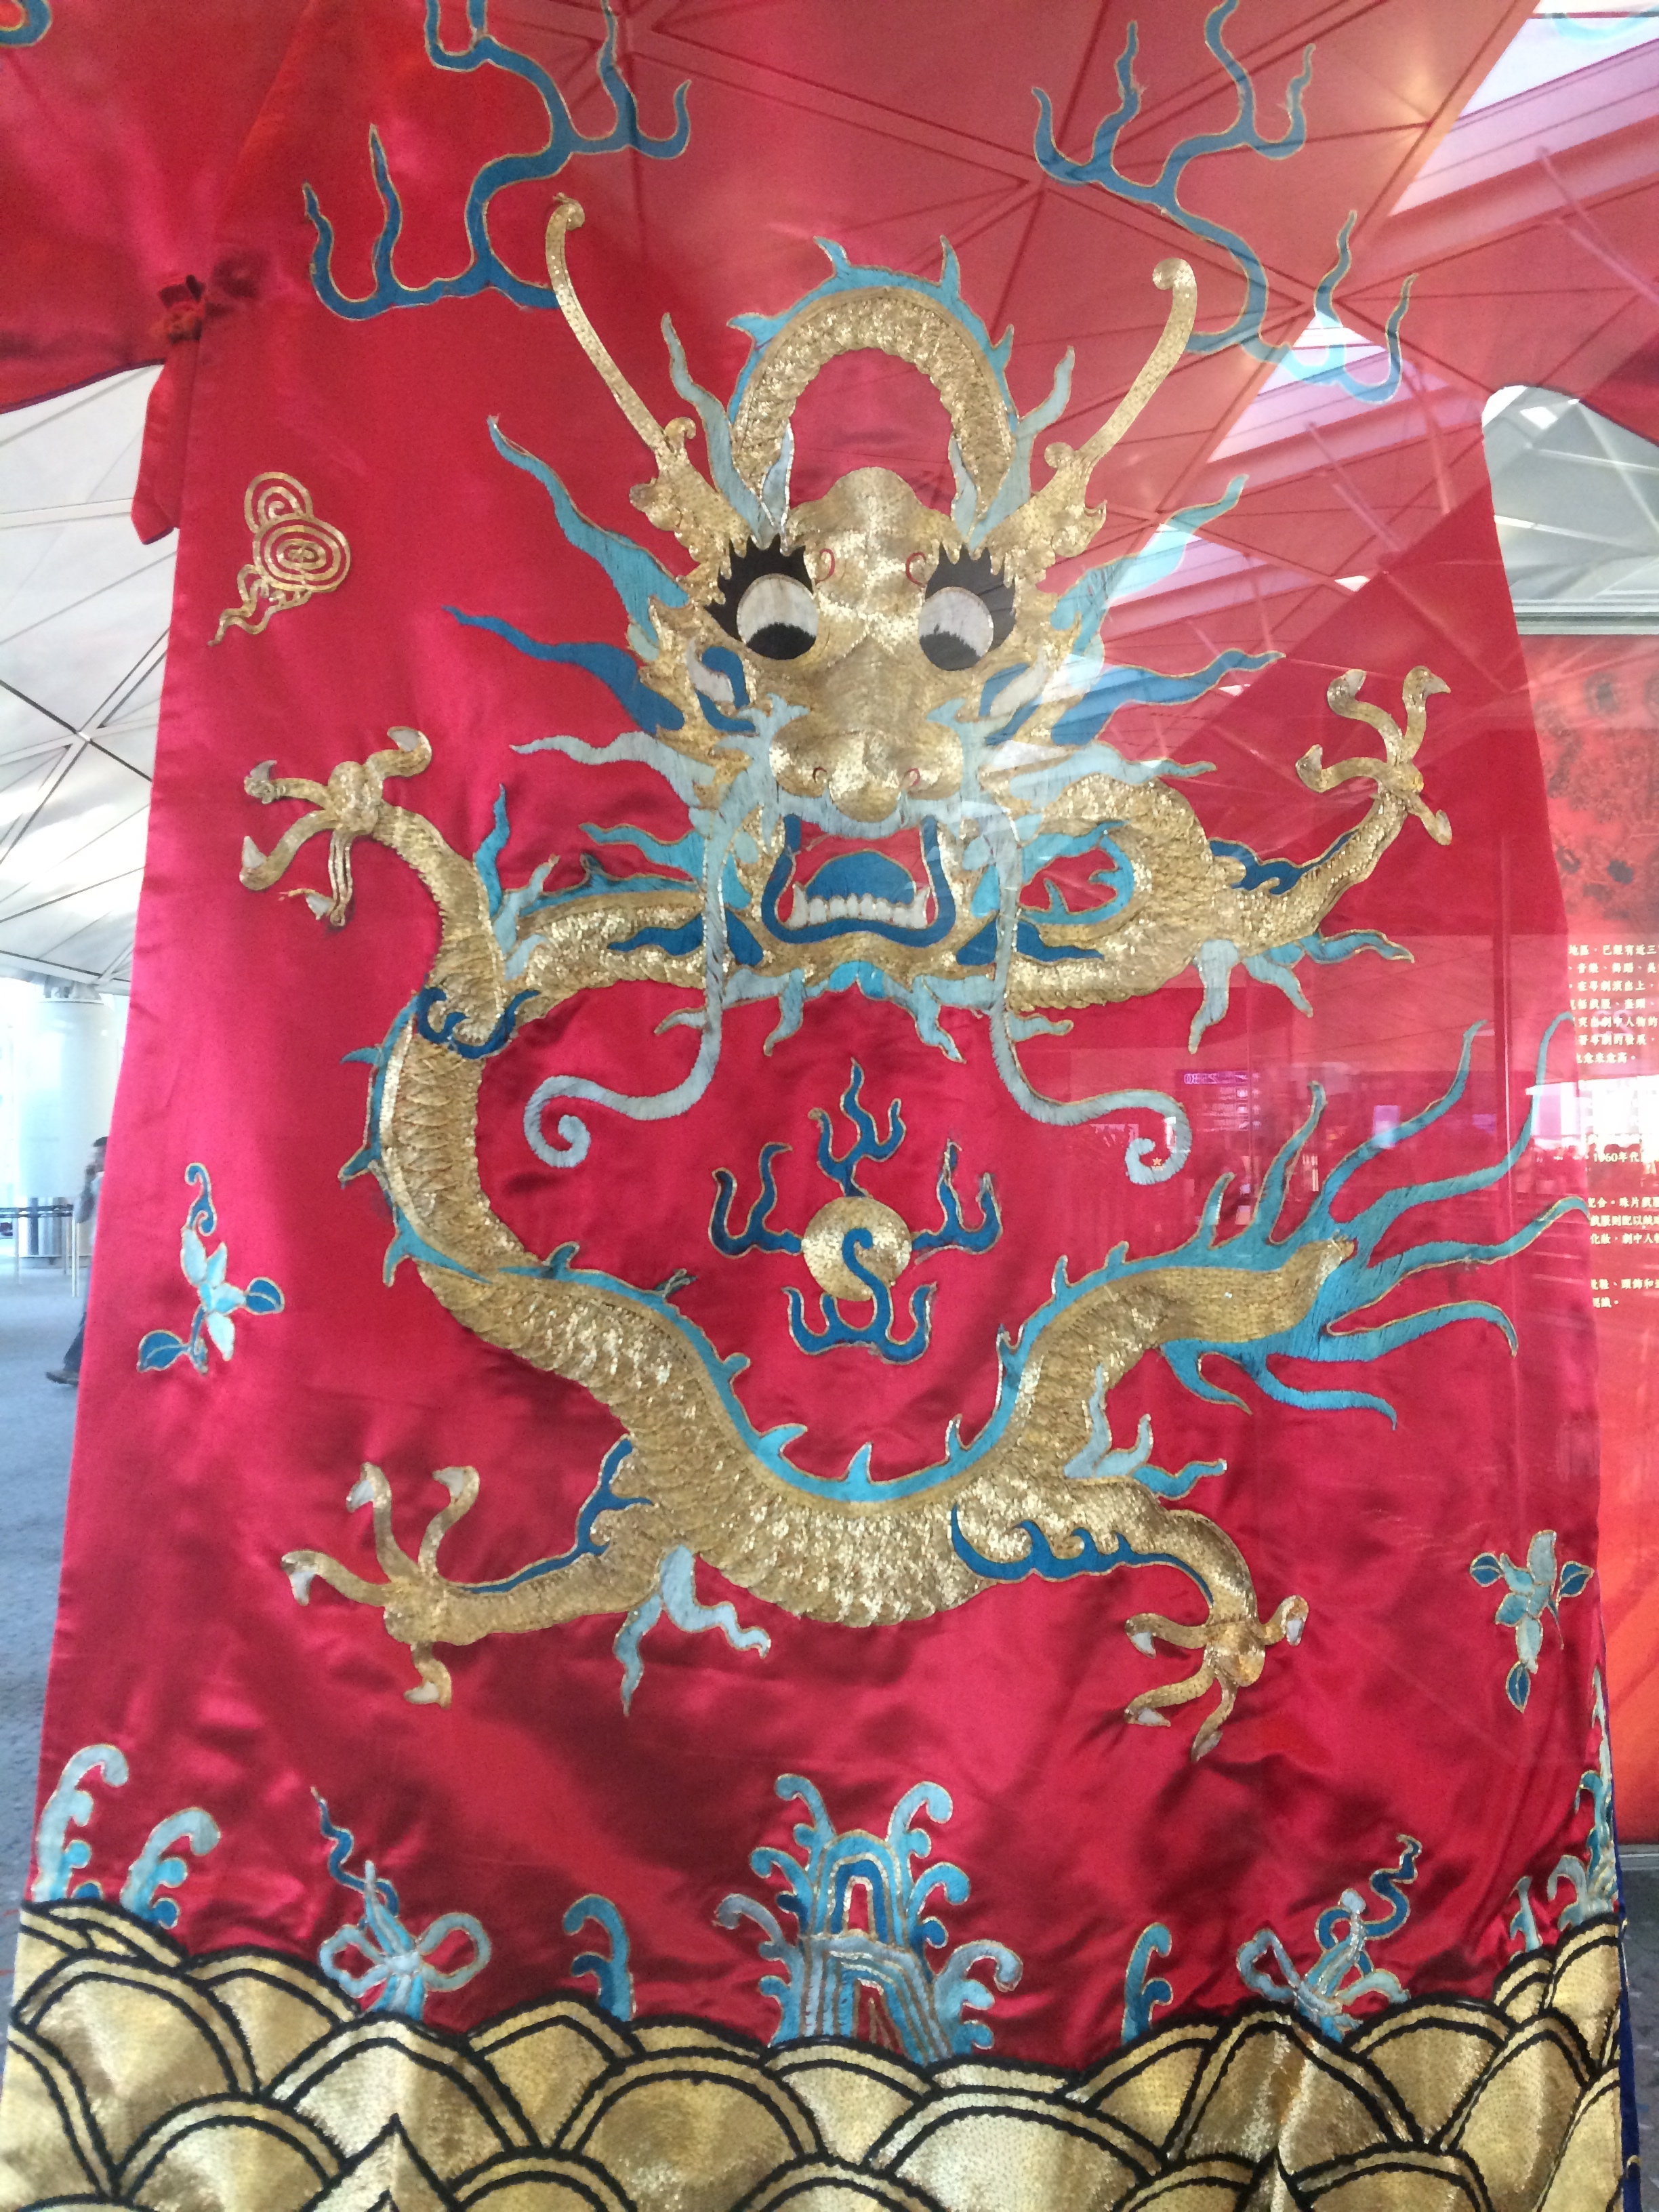 During my layover I killed some time learning about the Chinese opera and it's traditional dress.